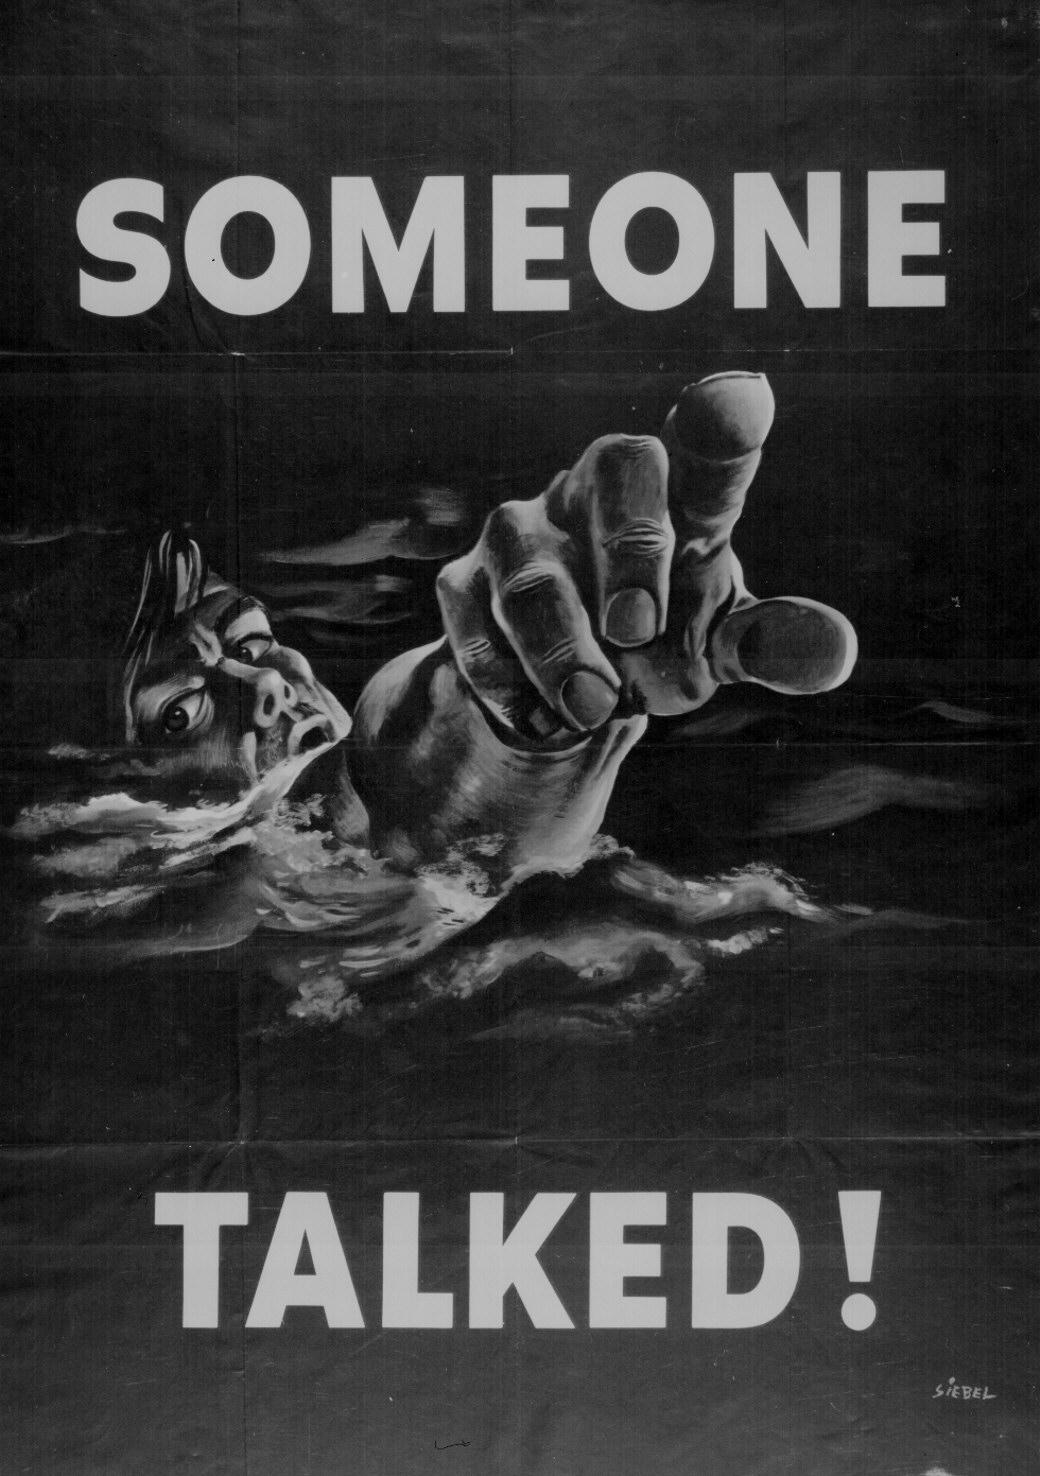 ... posters were commonplace throughout the duration of World War II